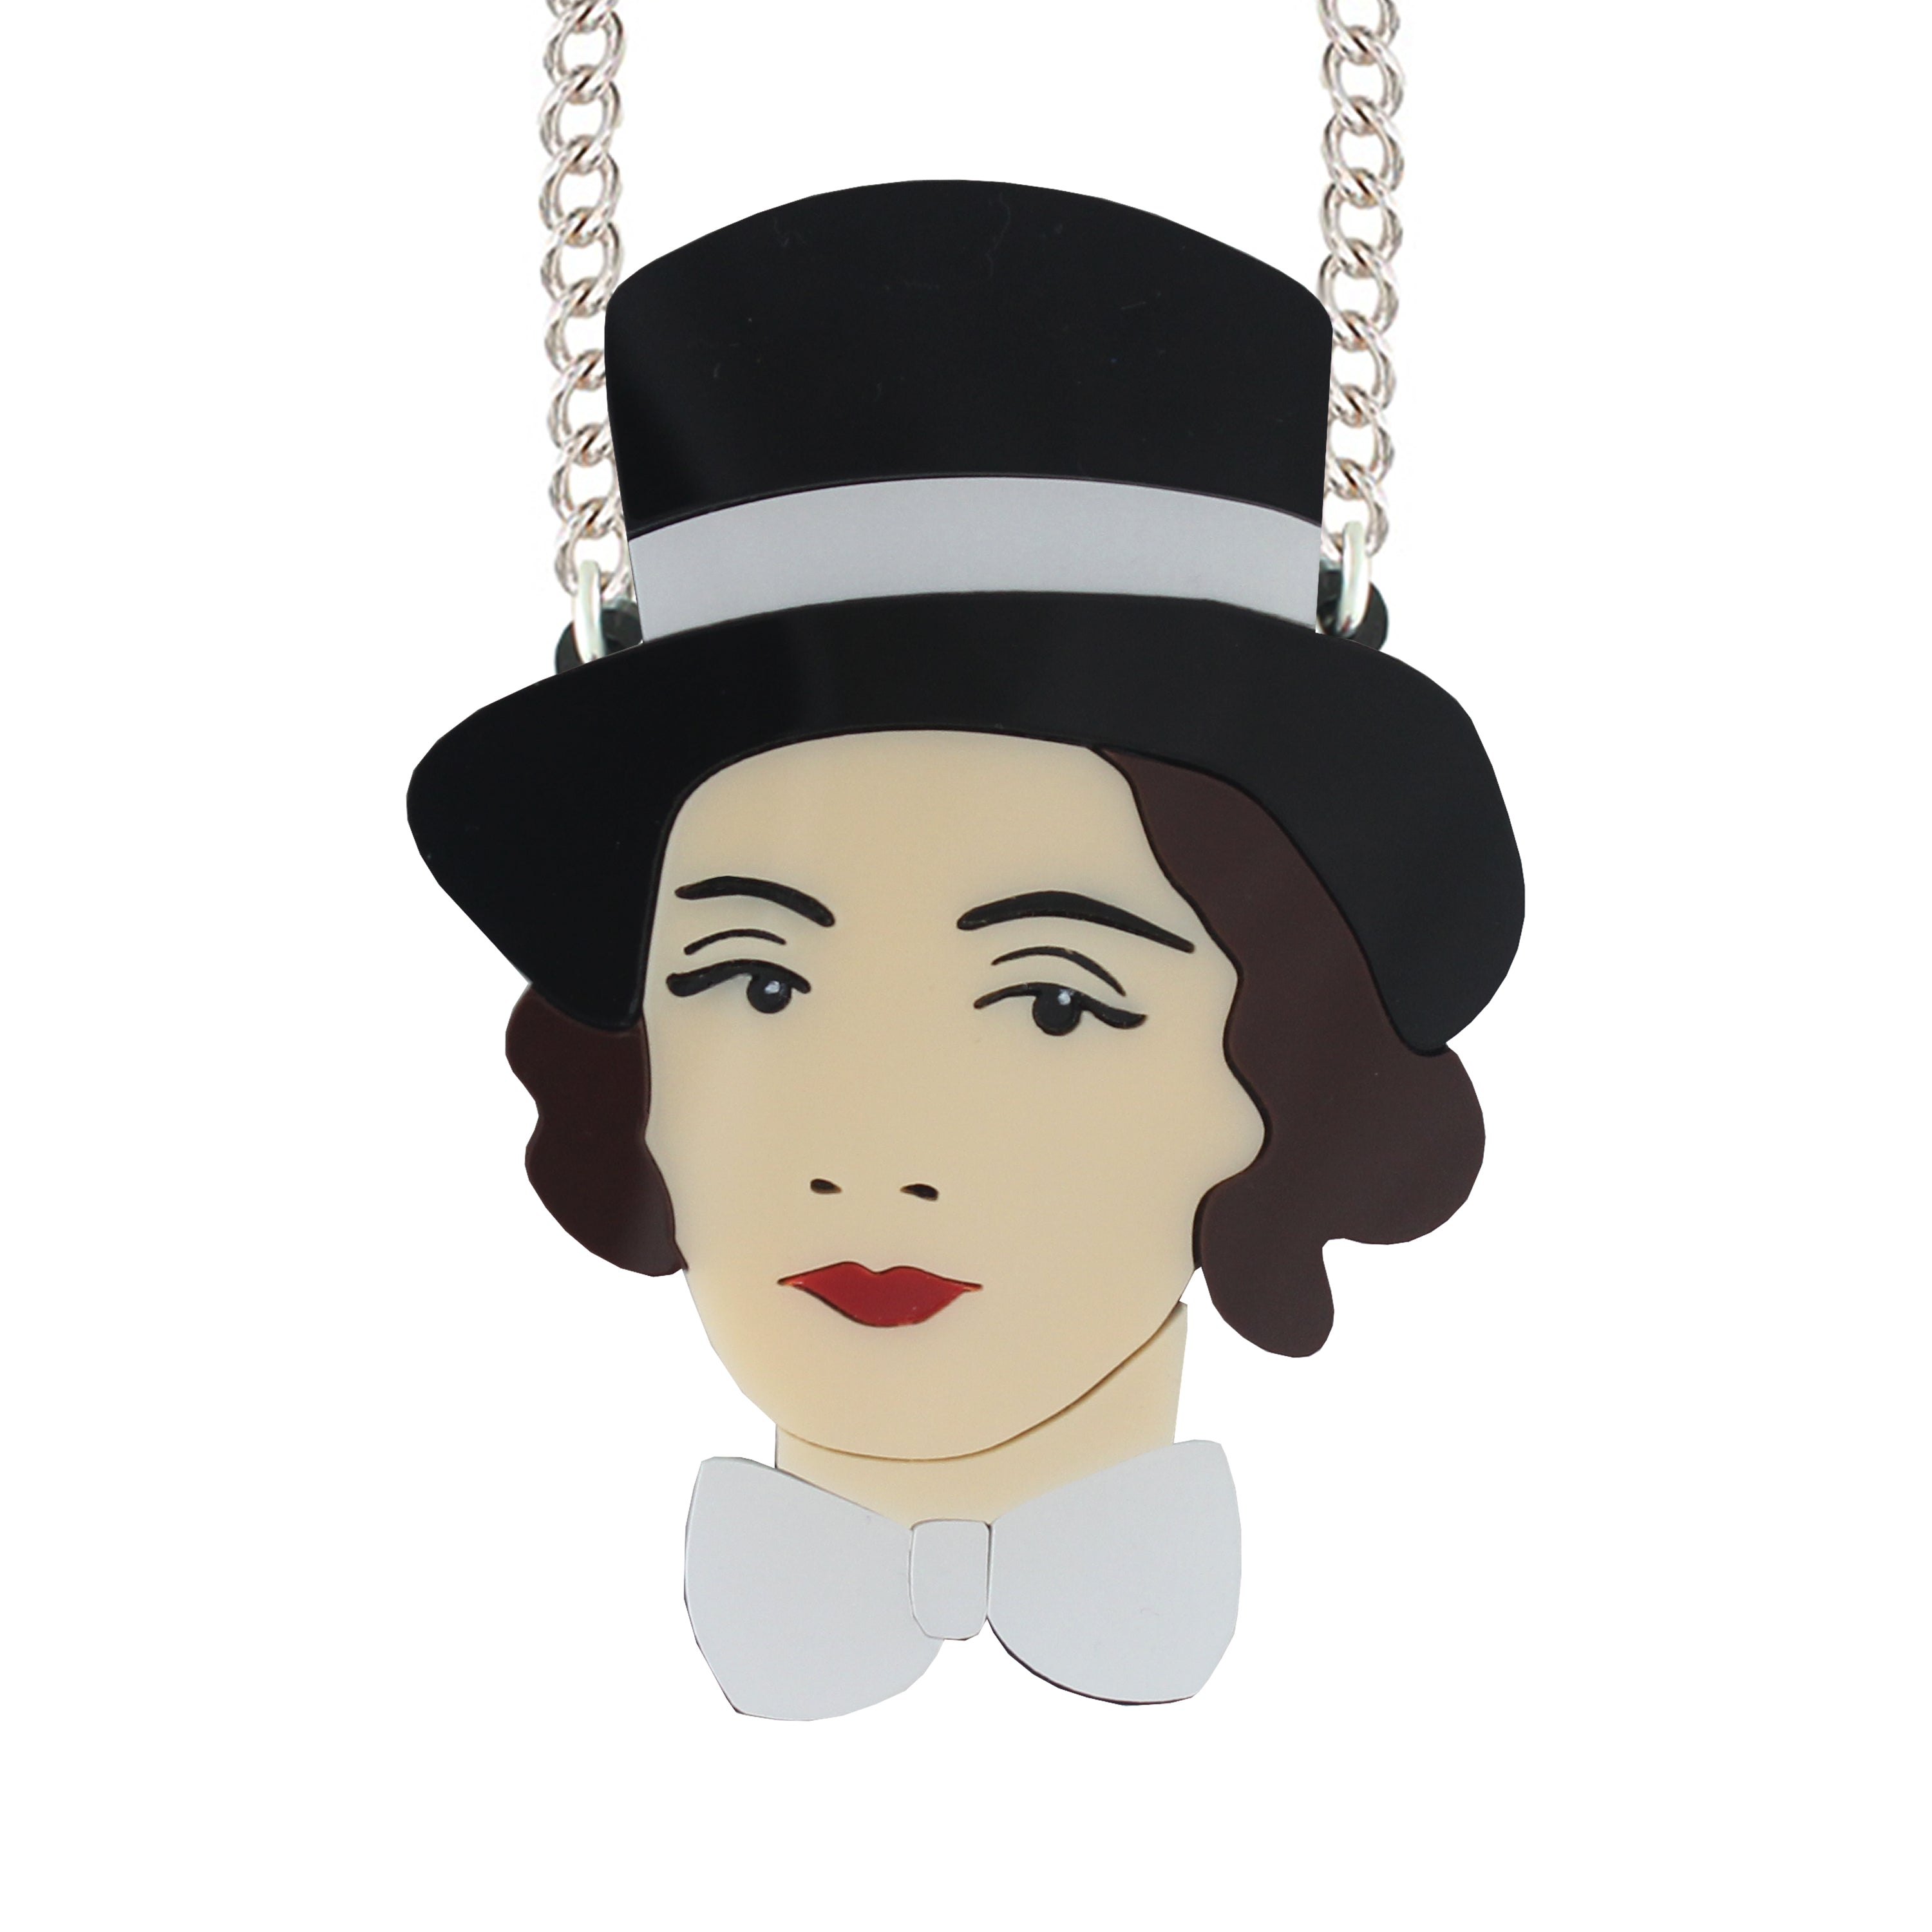 NEW! Marlene Dietrich necklace